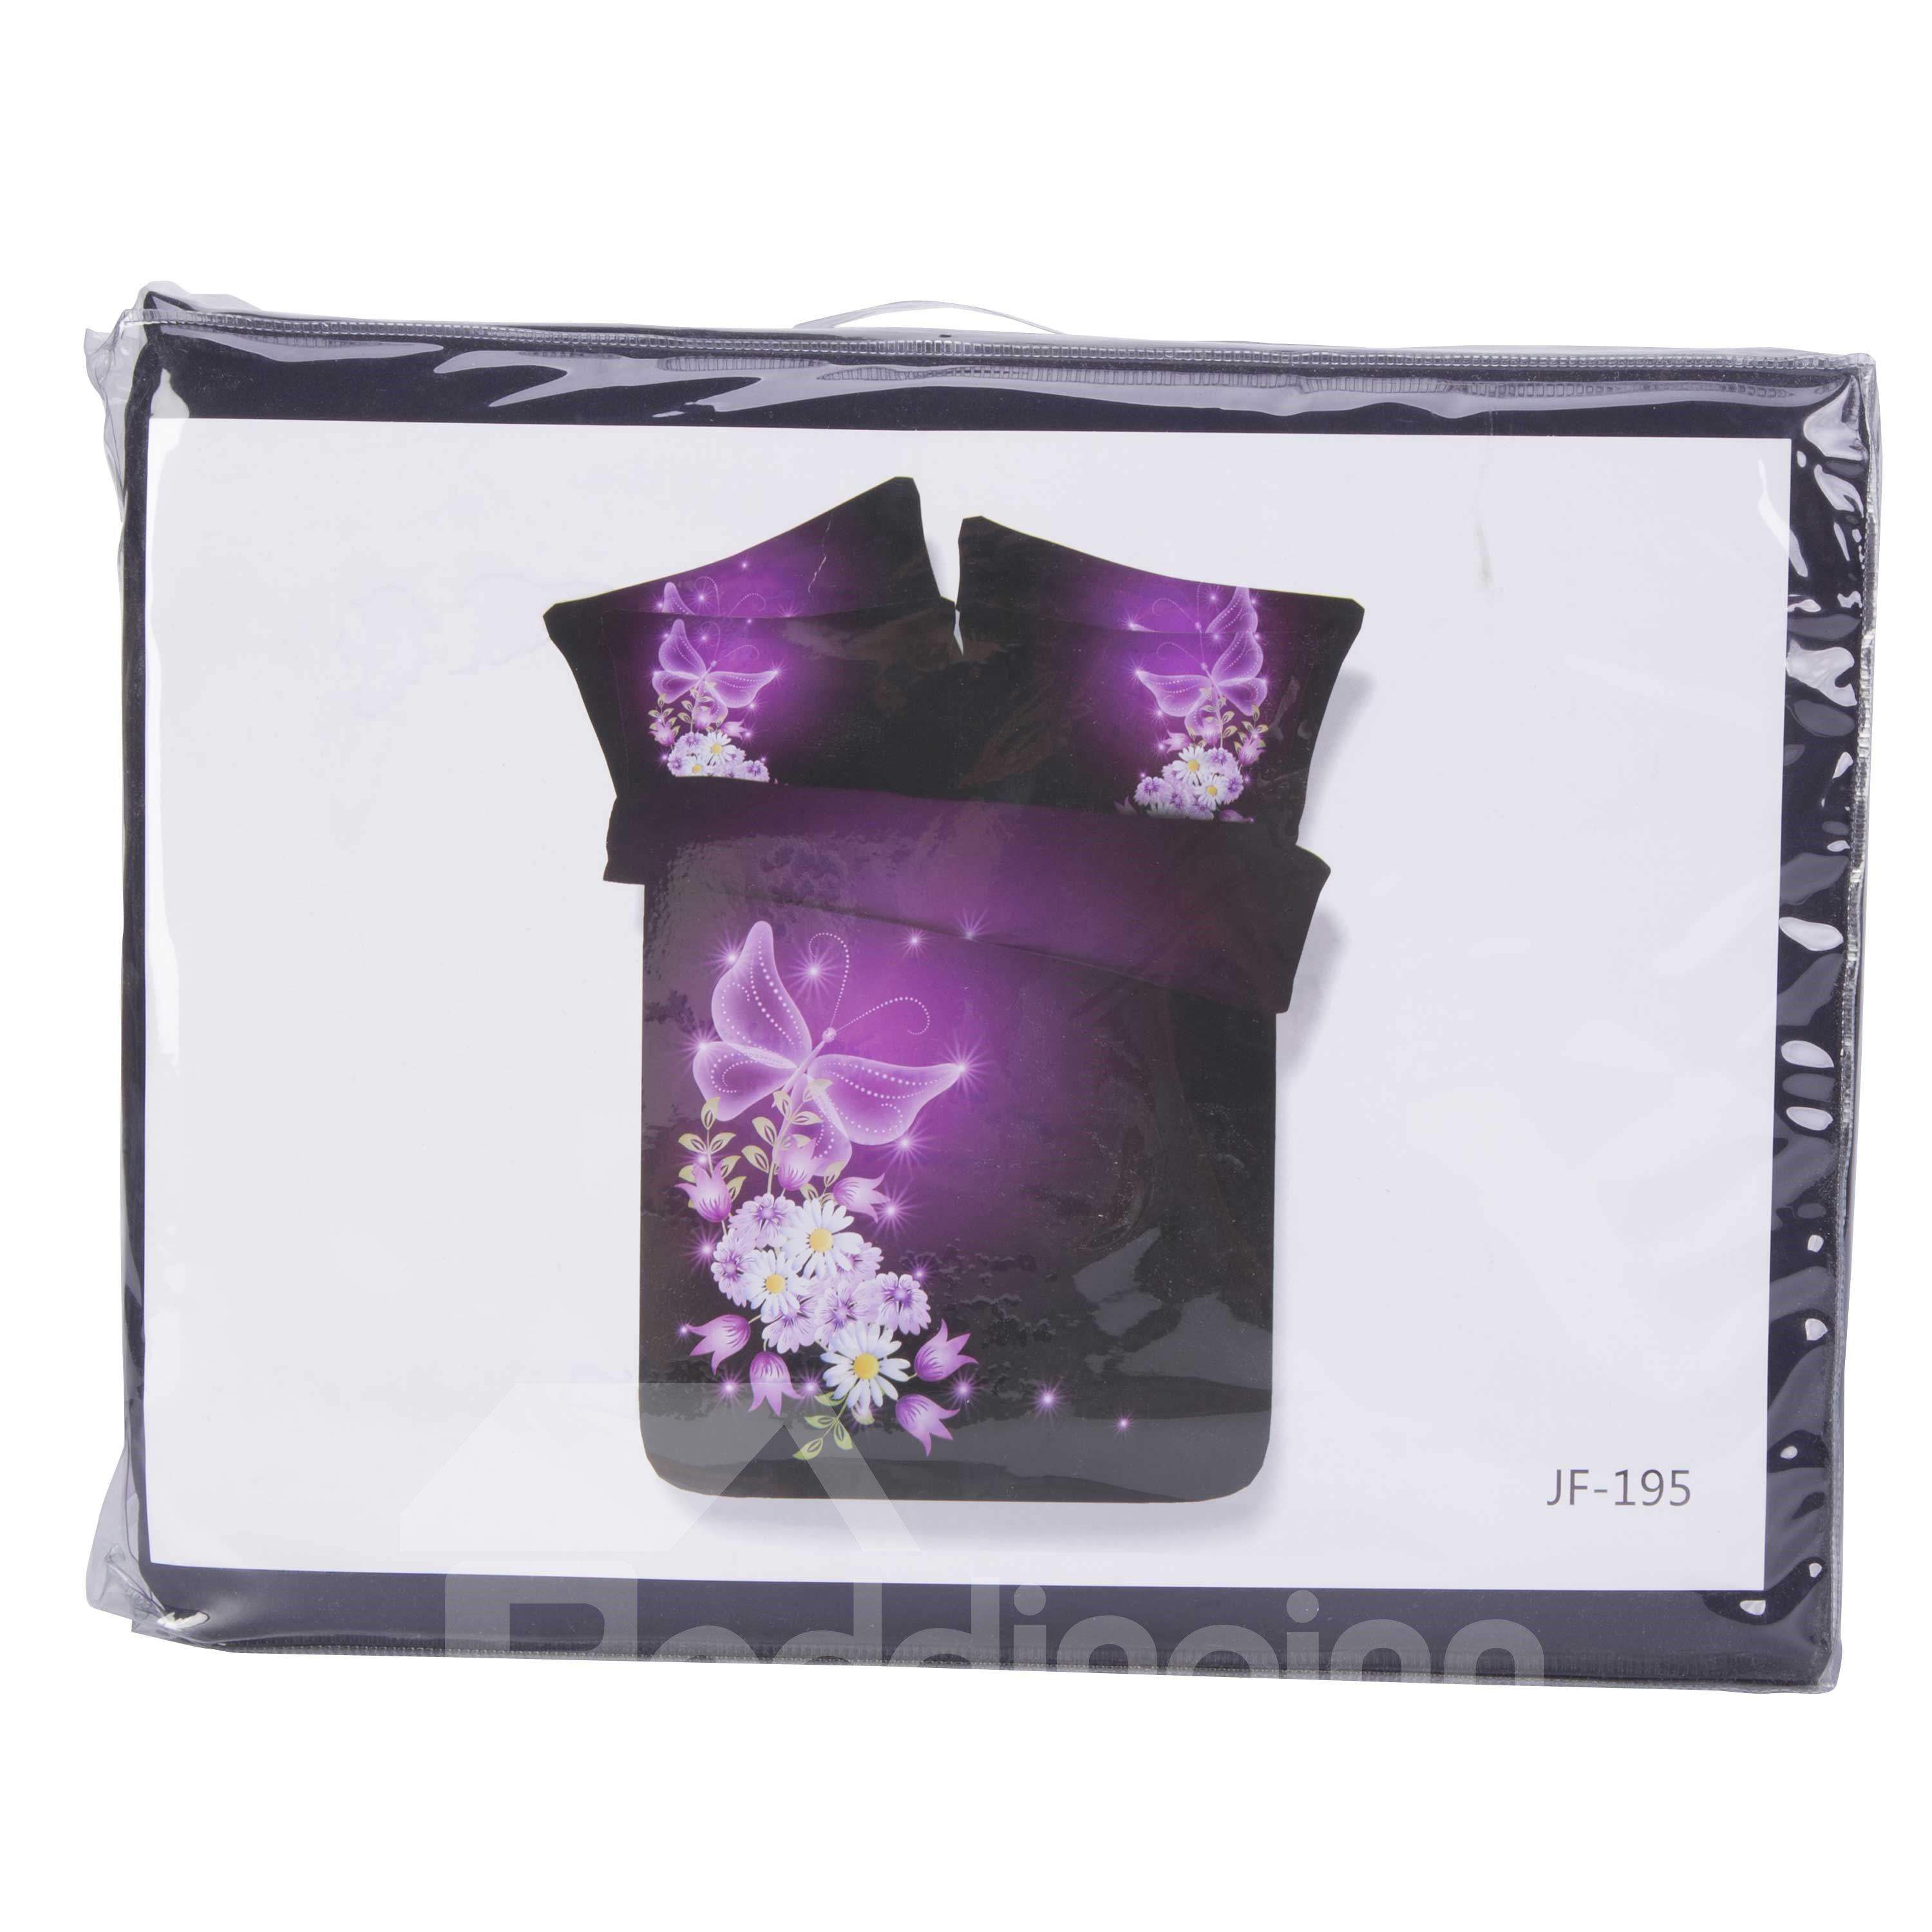 3D Daisy and Butterfly Printed Cotton 4-Piece Purple Bedding Sets/Duvet Covers